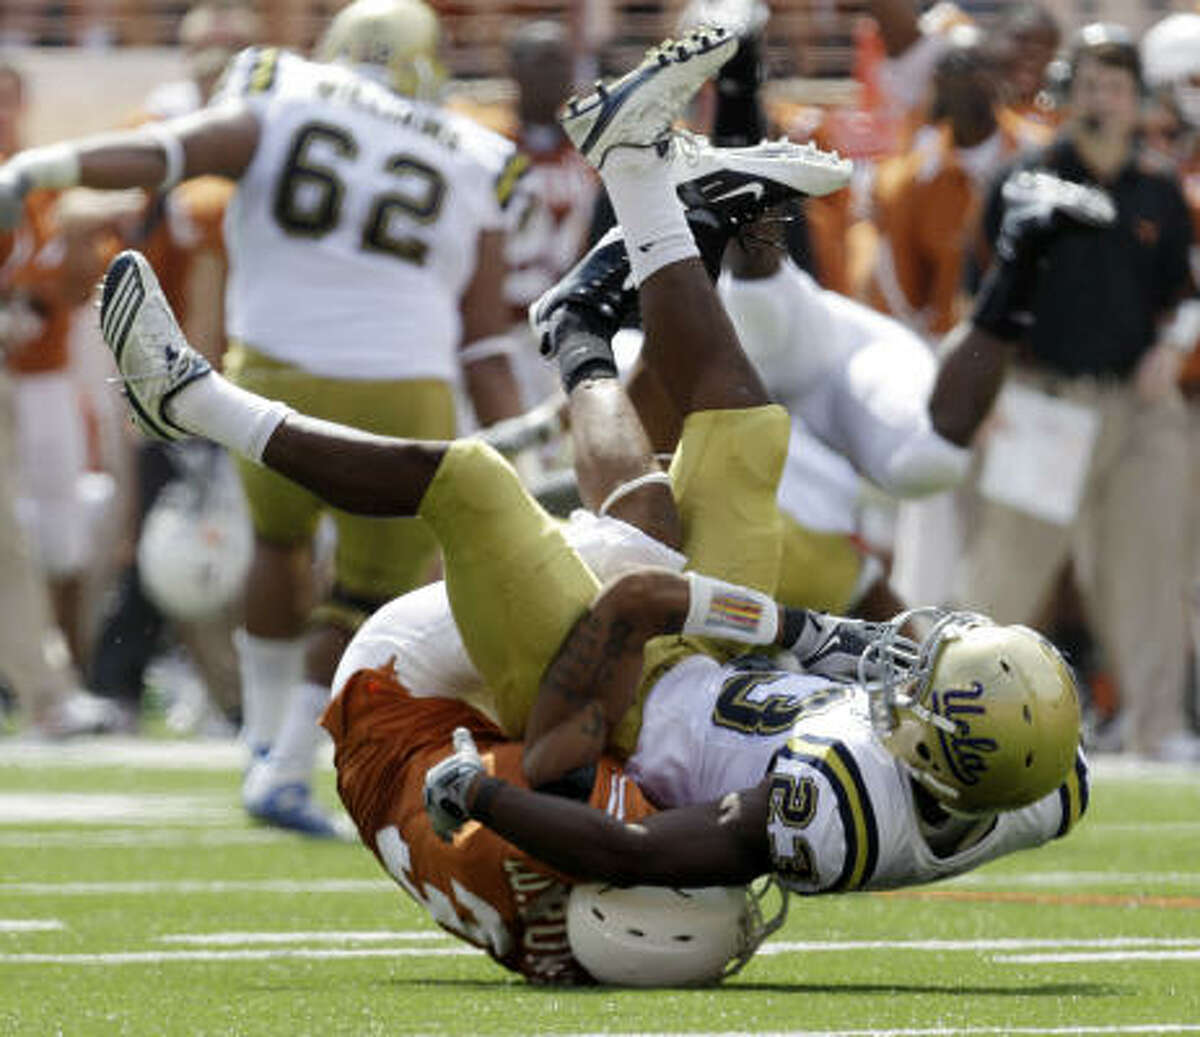 UCLA's Jonathan Franklin is upended by Texas' Curtis Brown during the second quarter.